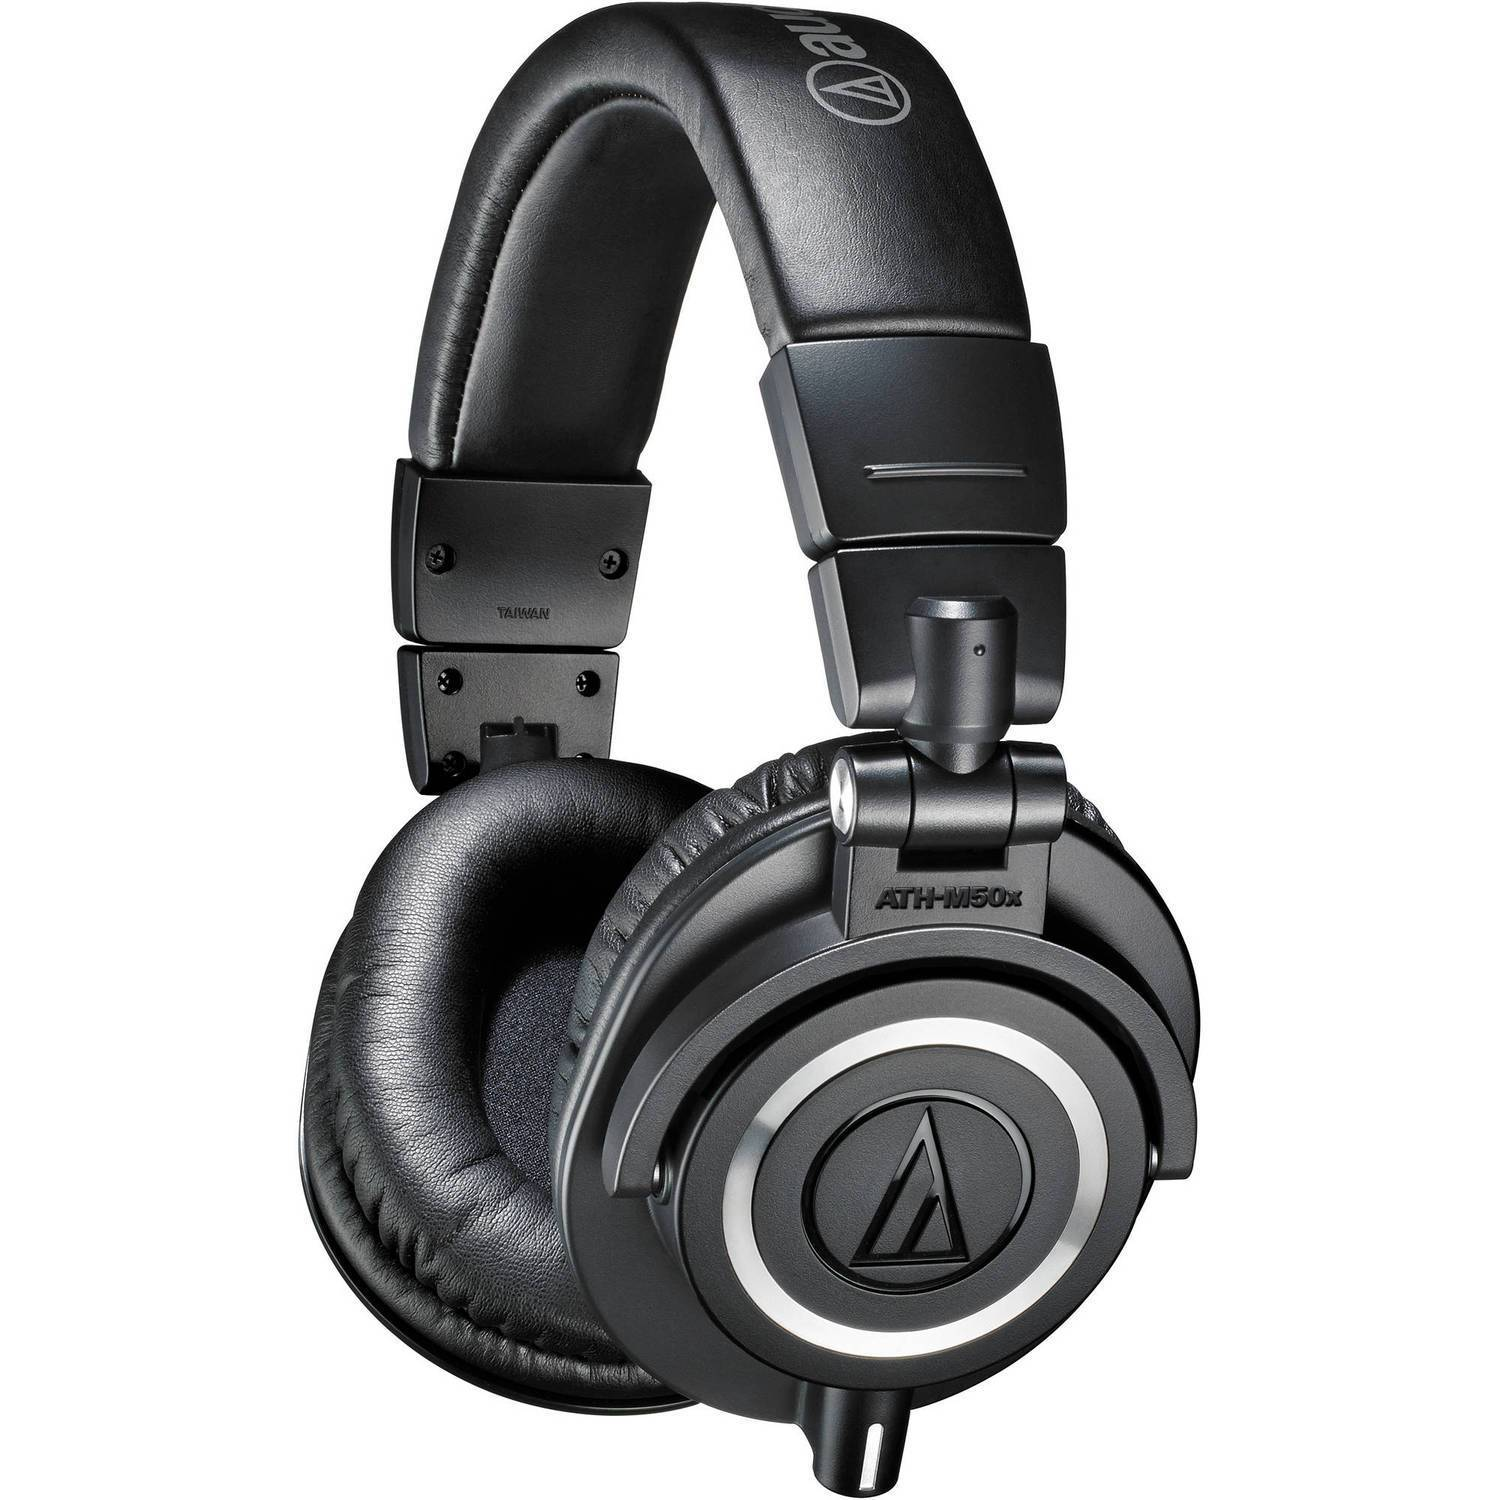 Audio Technica ATH-M50x Closed Back Headphones